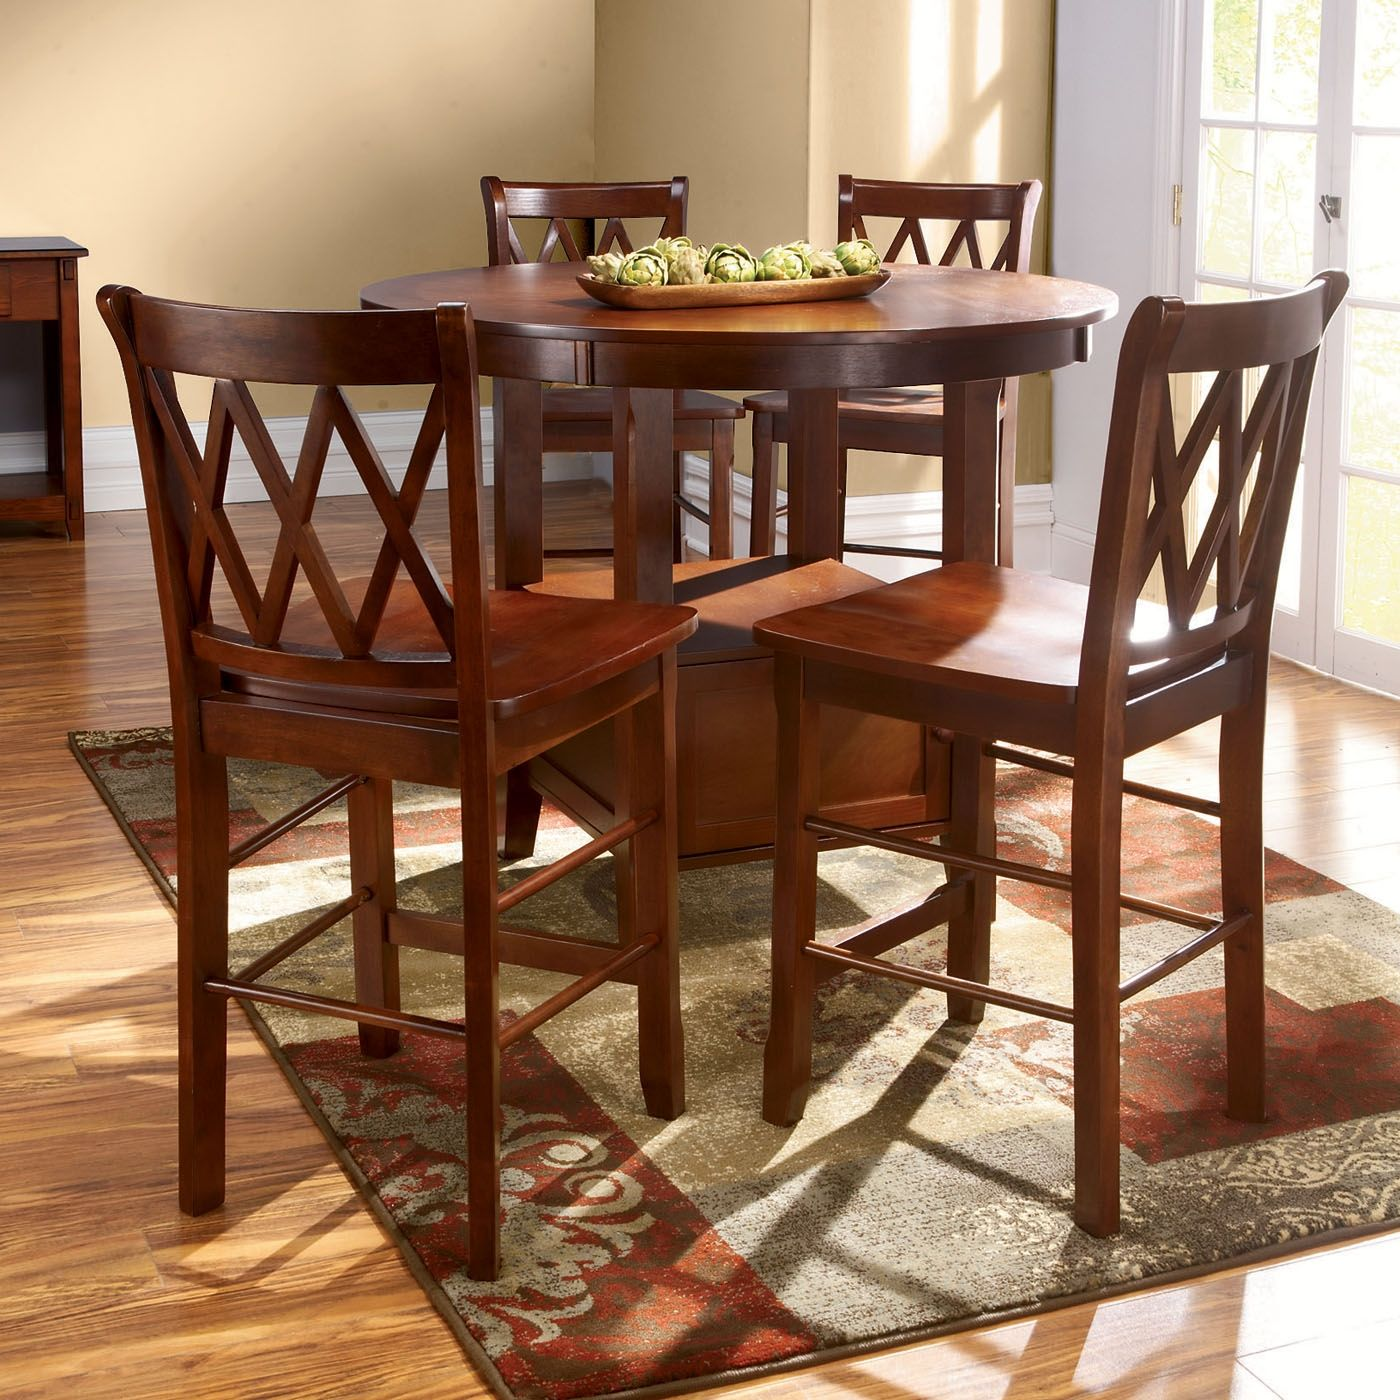 Furniture Shopko Top Kitchen Table Kitchen Table Settings High Top Table Kitchen